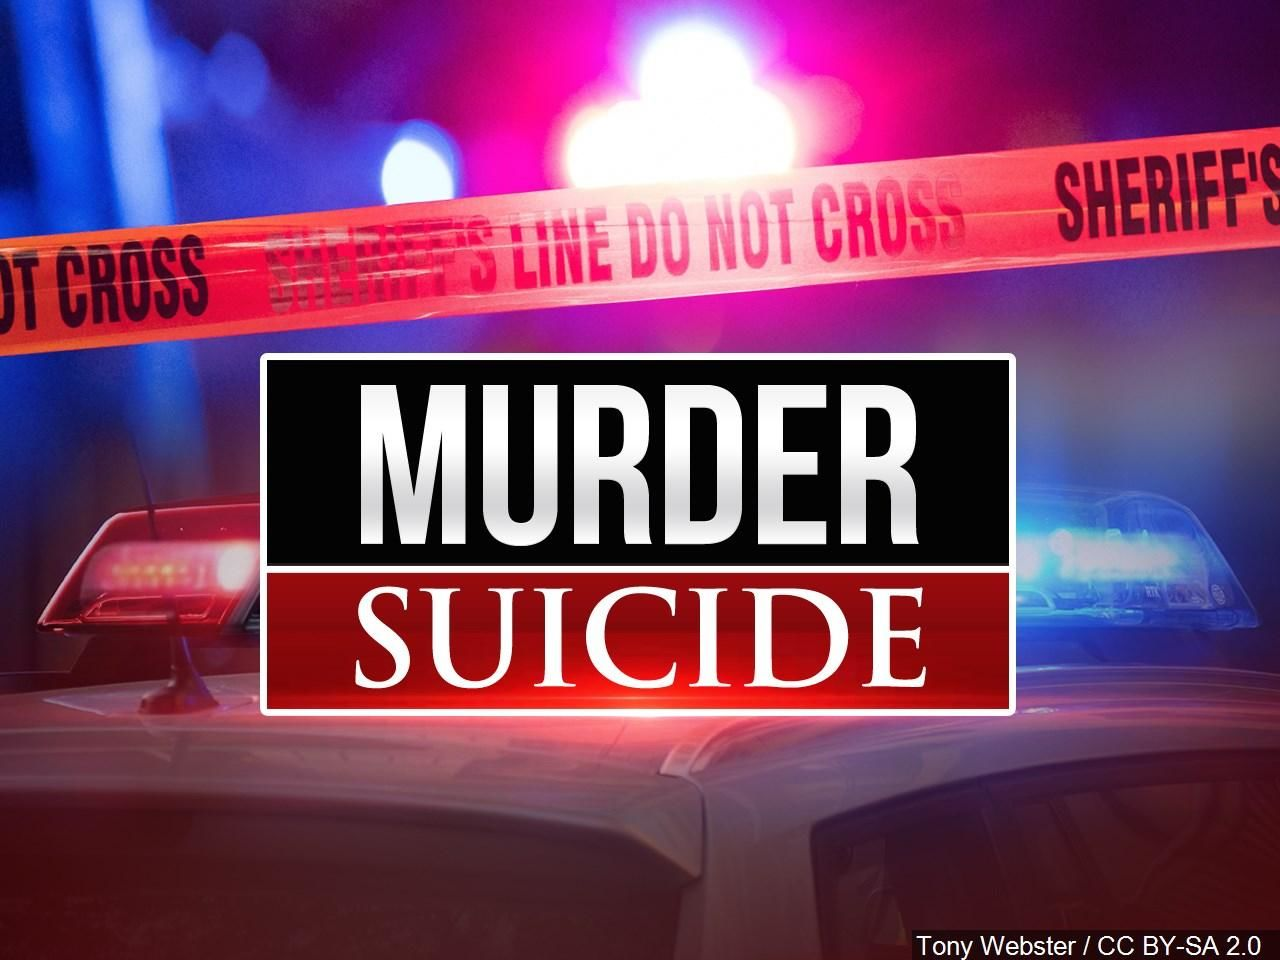 An elderly couple died in Washington state in what police are saying is a murder-suicide from notes found in their home detailing their hardship to pay for medical care. (Photo: MGN /{&nbsp;}Tony Webster / CC BY-SA 2.0)<p></p>